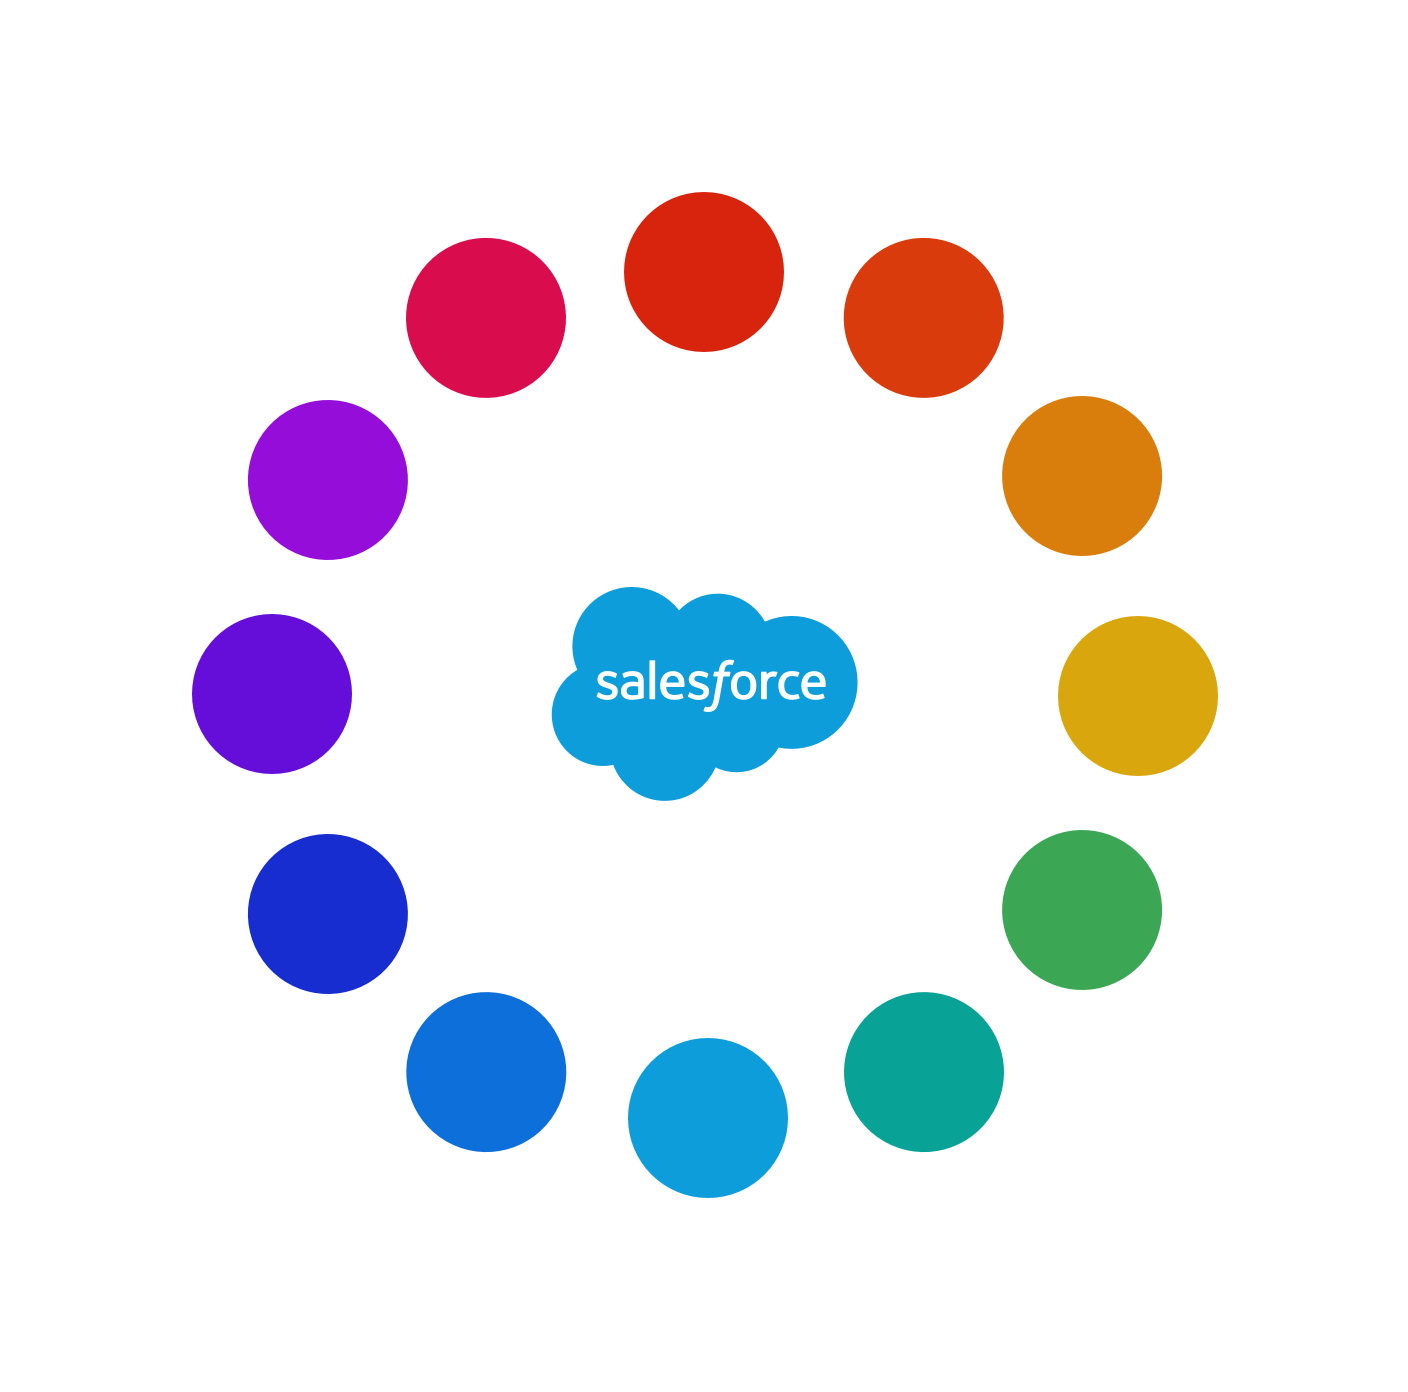 The Salesforce logo surrounded by 12 color hues